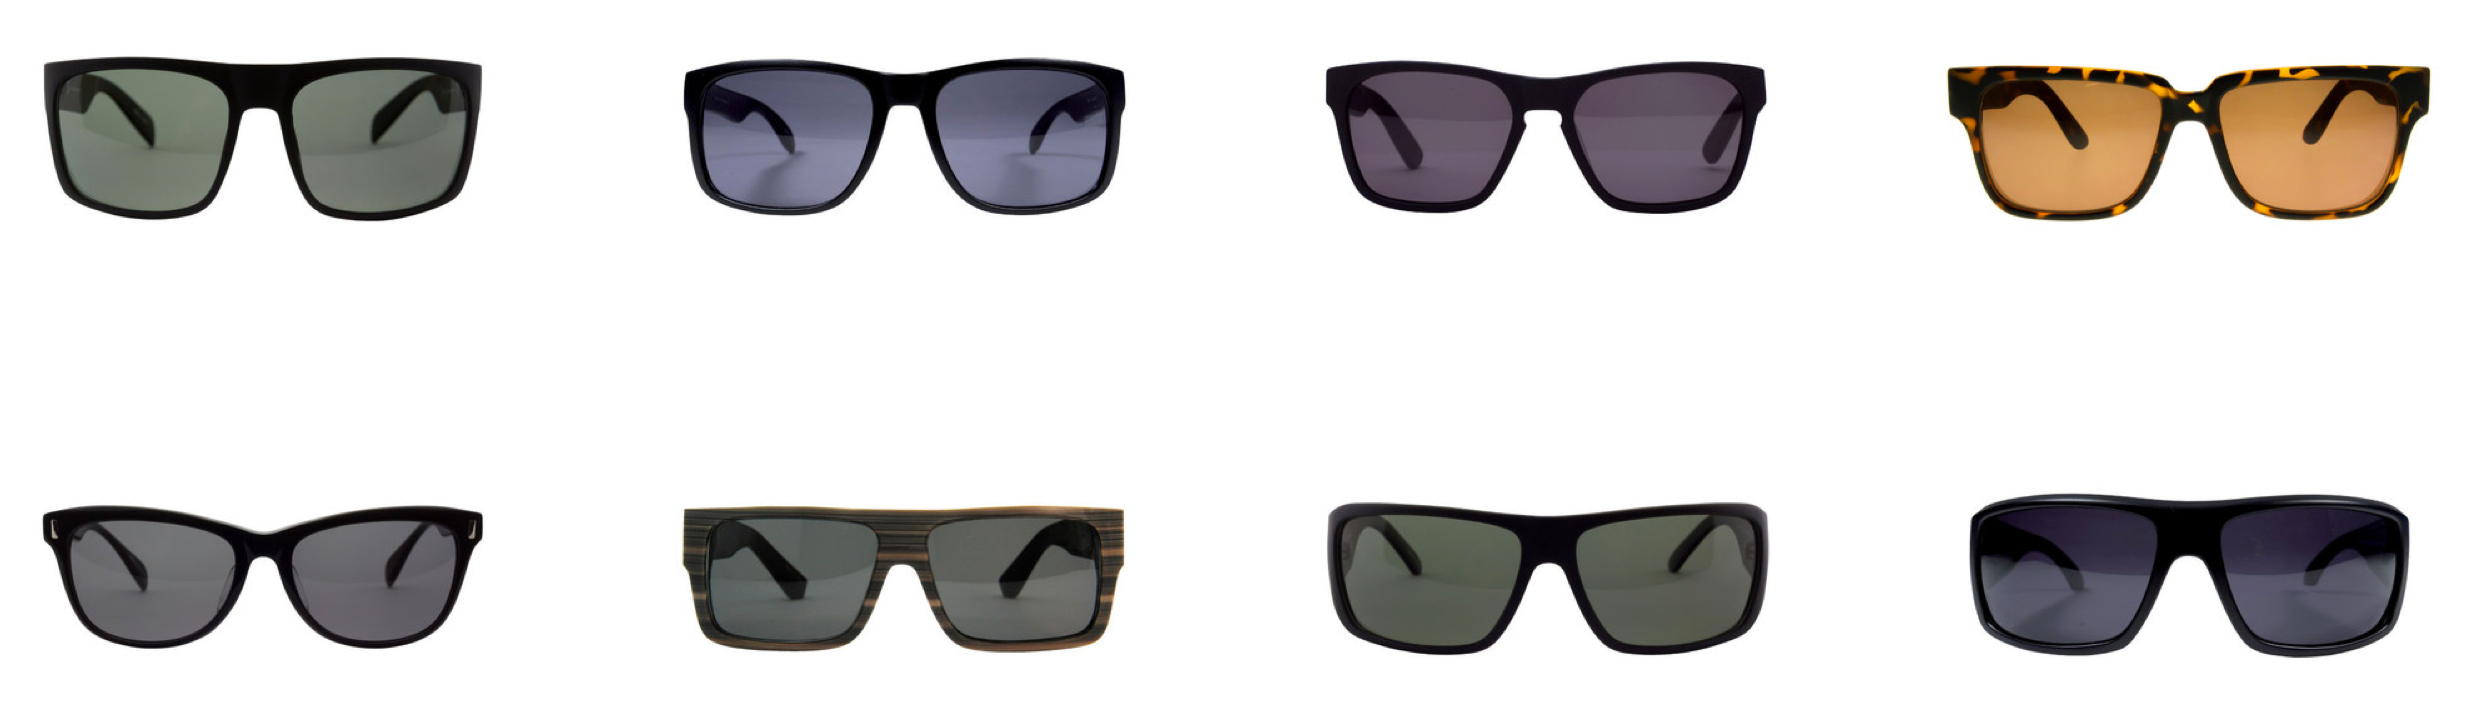 Range of Eyewear